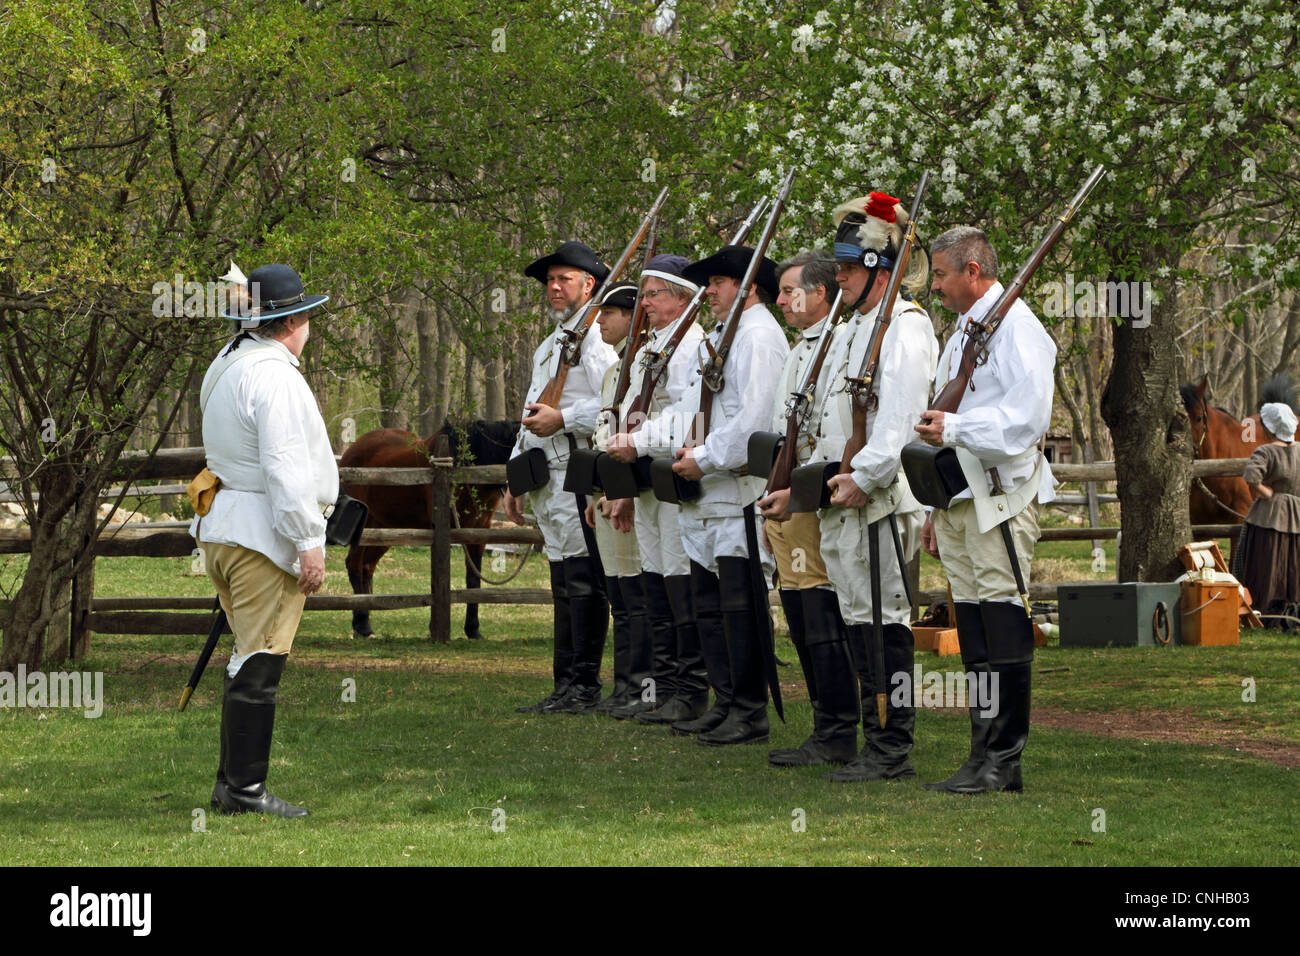 A re-enactment of the American Revolution's Continental Army drilling in Jockey Hollow - Morristown National - Stock Image